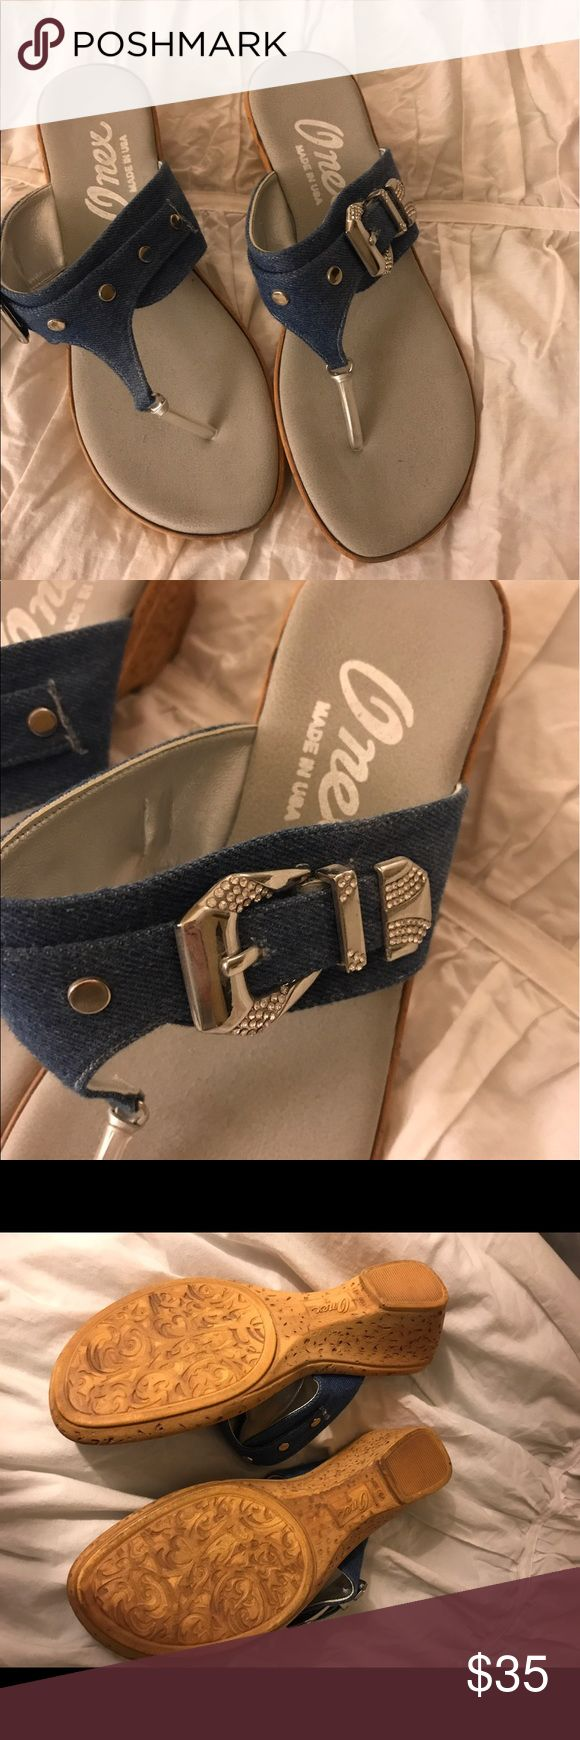 Onex sandals Onex sandals in denim blue with rhinestones and buckle. Worn once. Excellent condition . Make me an offer! onex Shoes Sandals